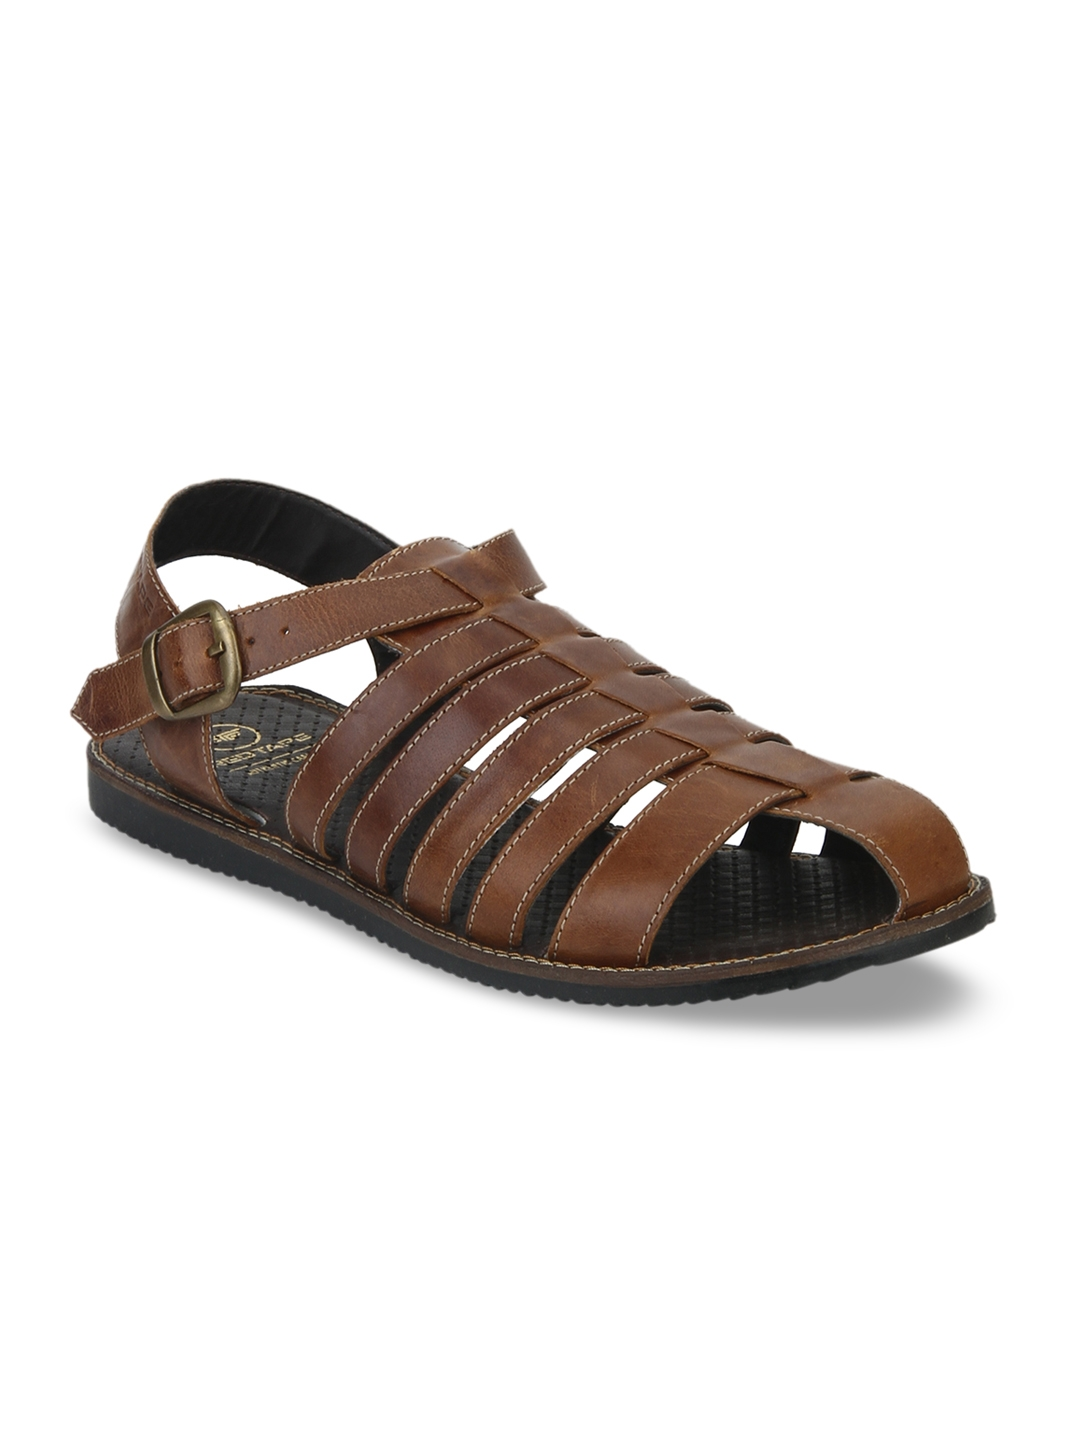 3c24eaa2fa58 Buy Red Tape Men Brown Leather Gladiators - Sandals for Men 2420130 ...